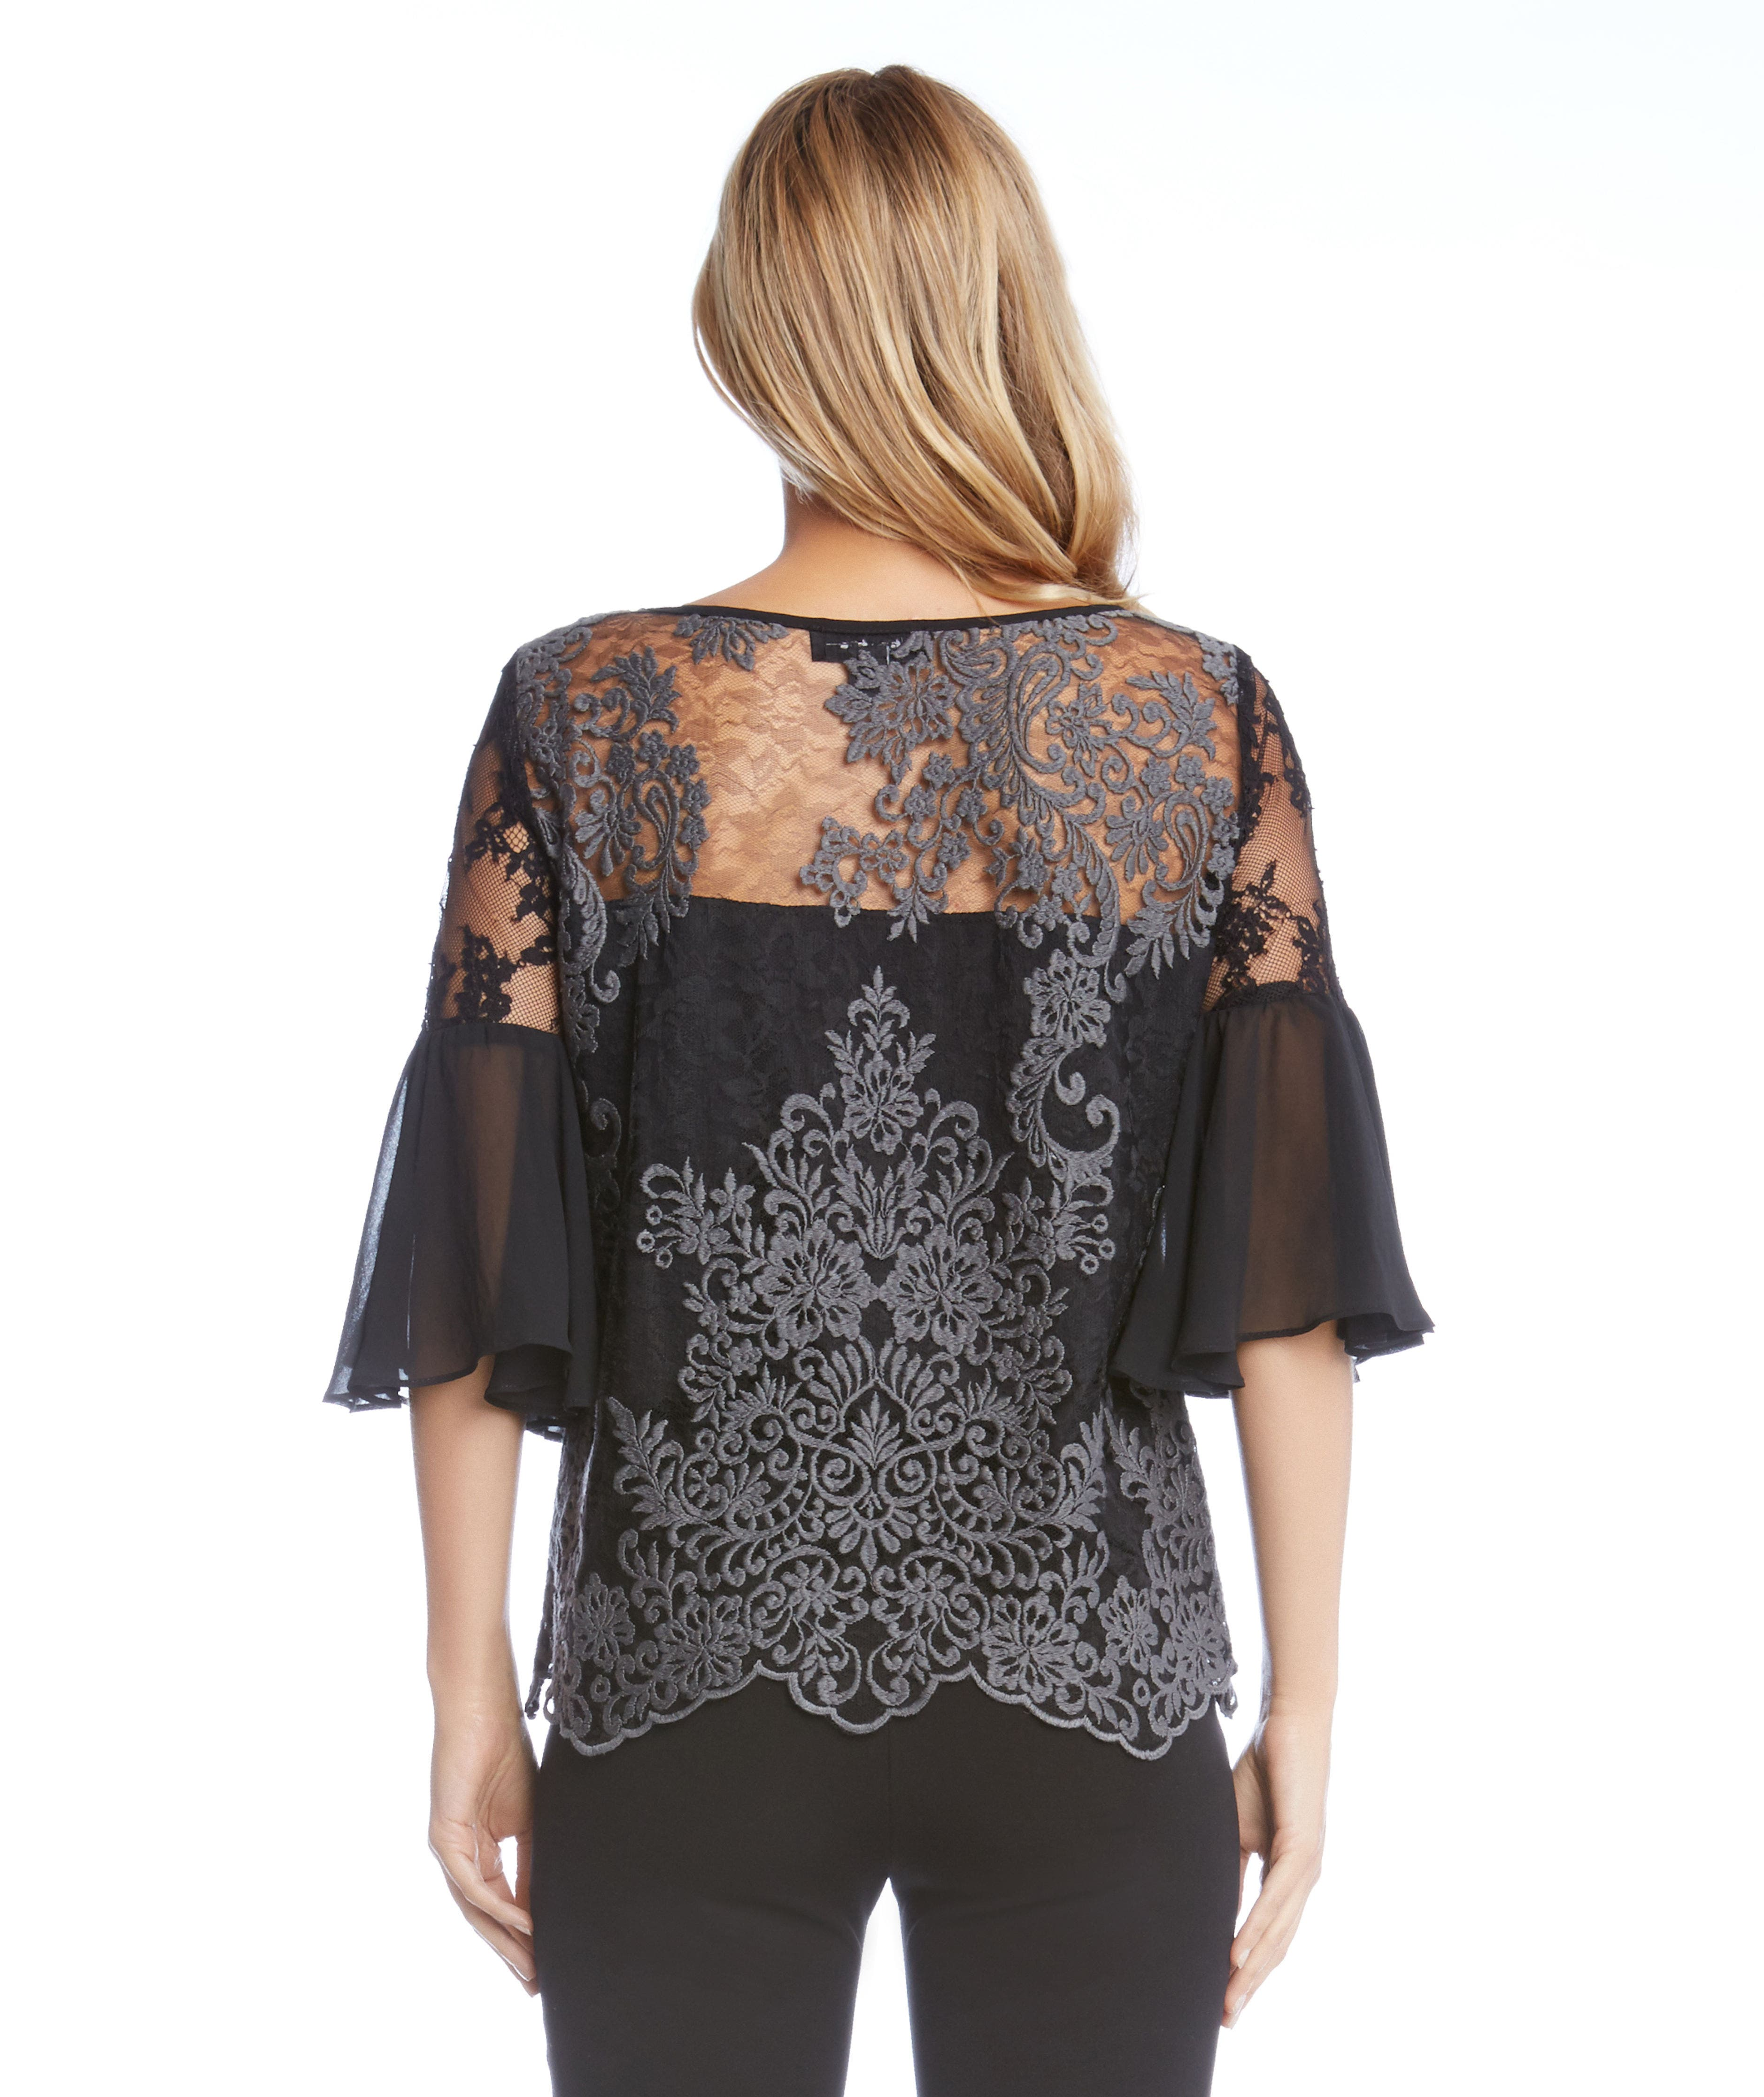 Flare Sleeve Lace Overlay Top,                             Alternate thumbnail 2, color,                             Grey/ Black